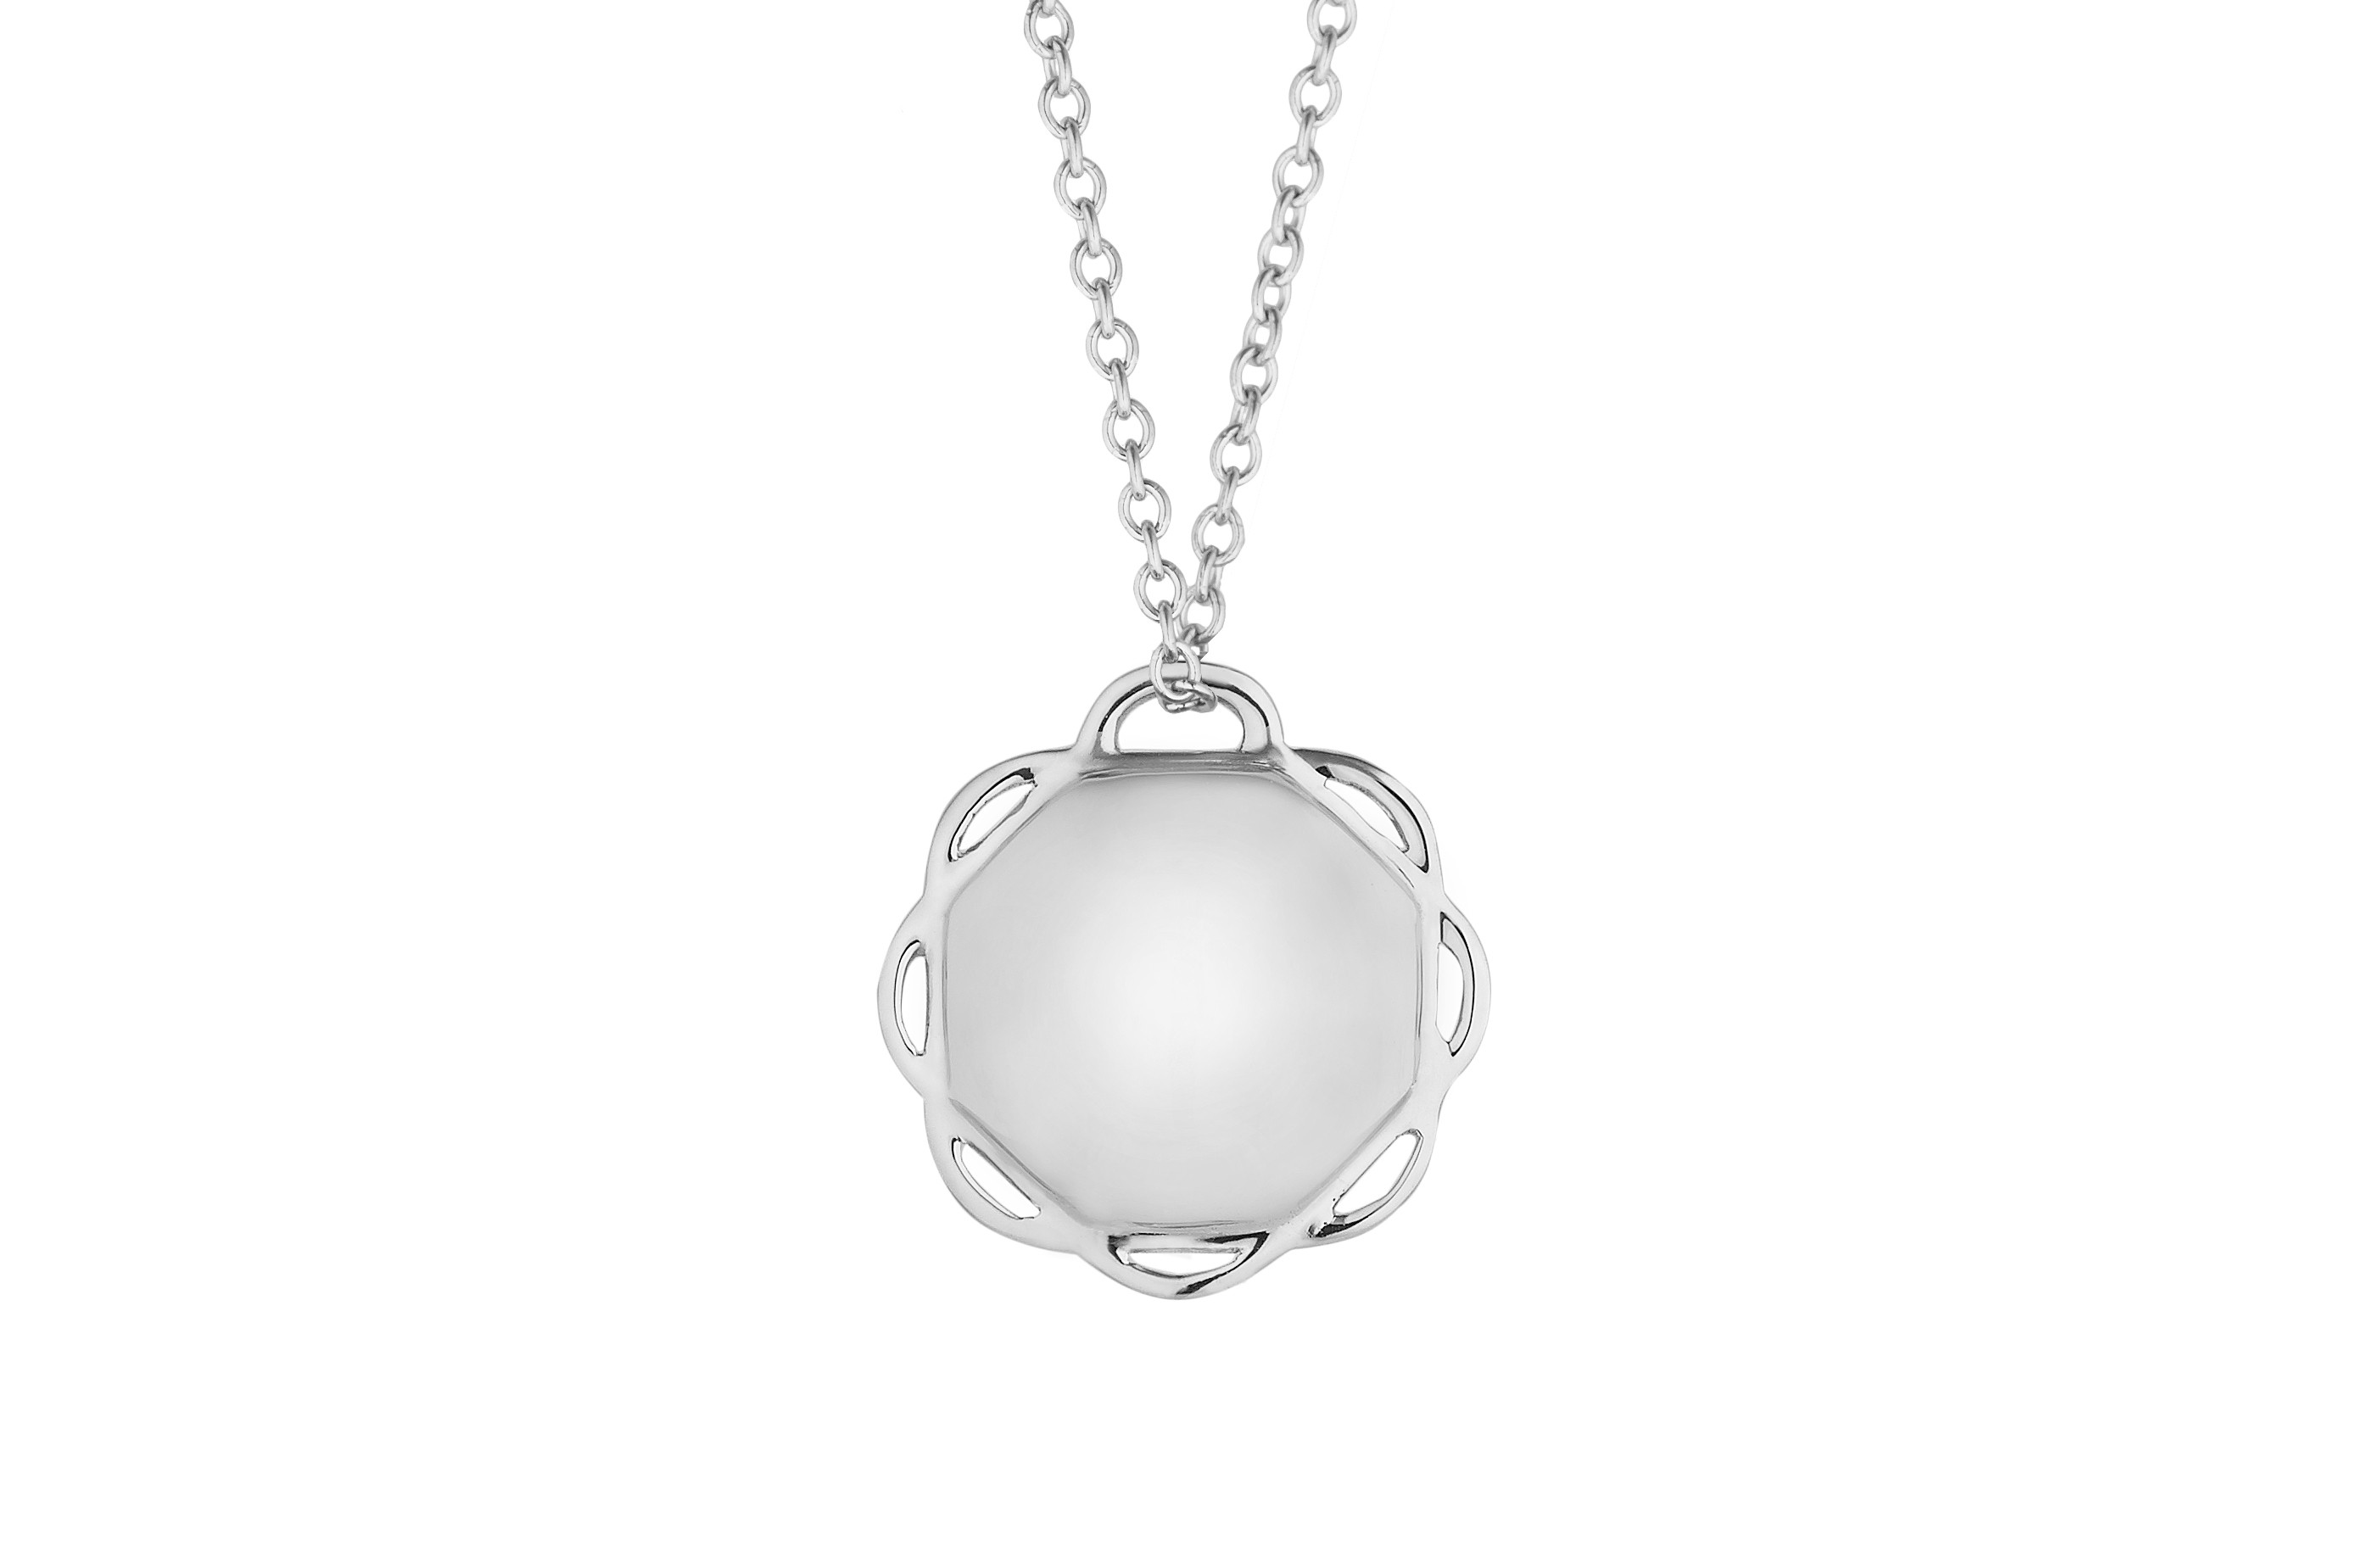 18K White Gold Single Circle Flora Pendant on AIDIA Extendable Link Chain